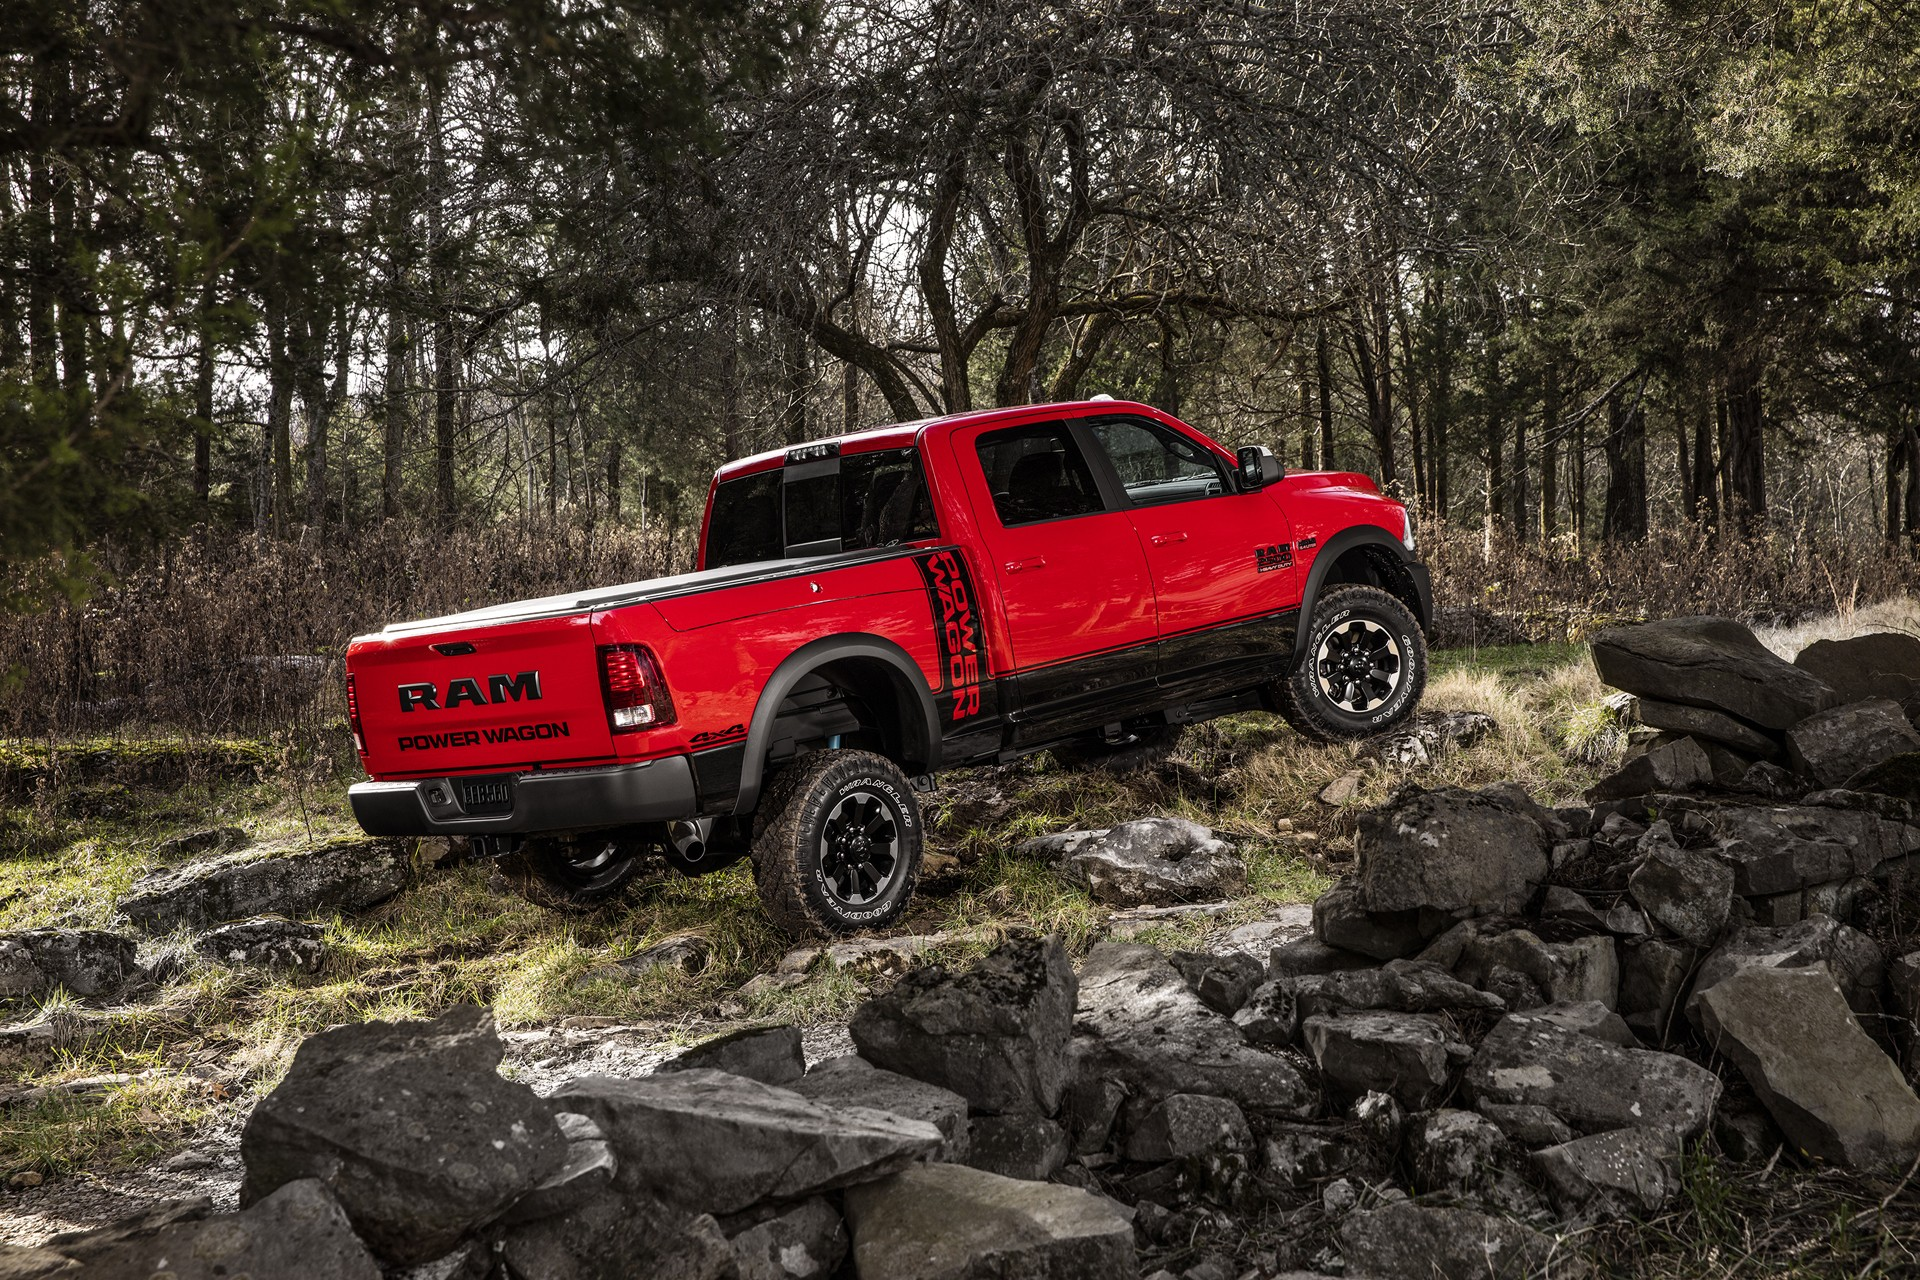 2017 Ram Power Wagon Ditches Chrome Grille for Blacked-Out ...